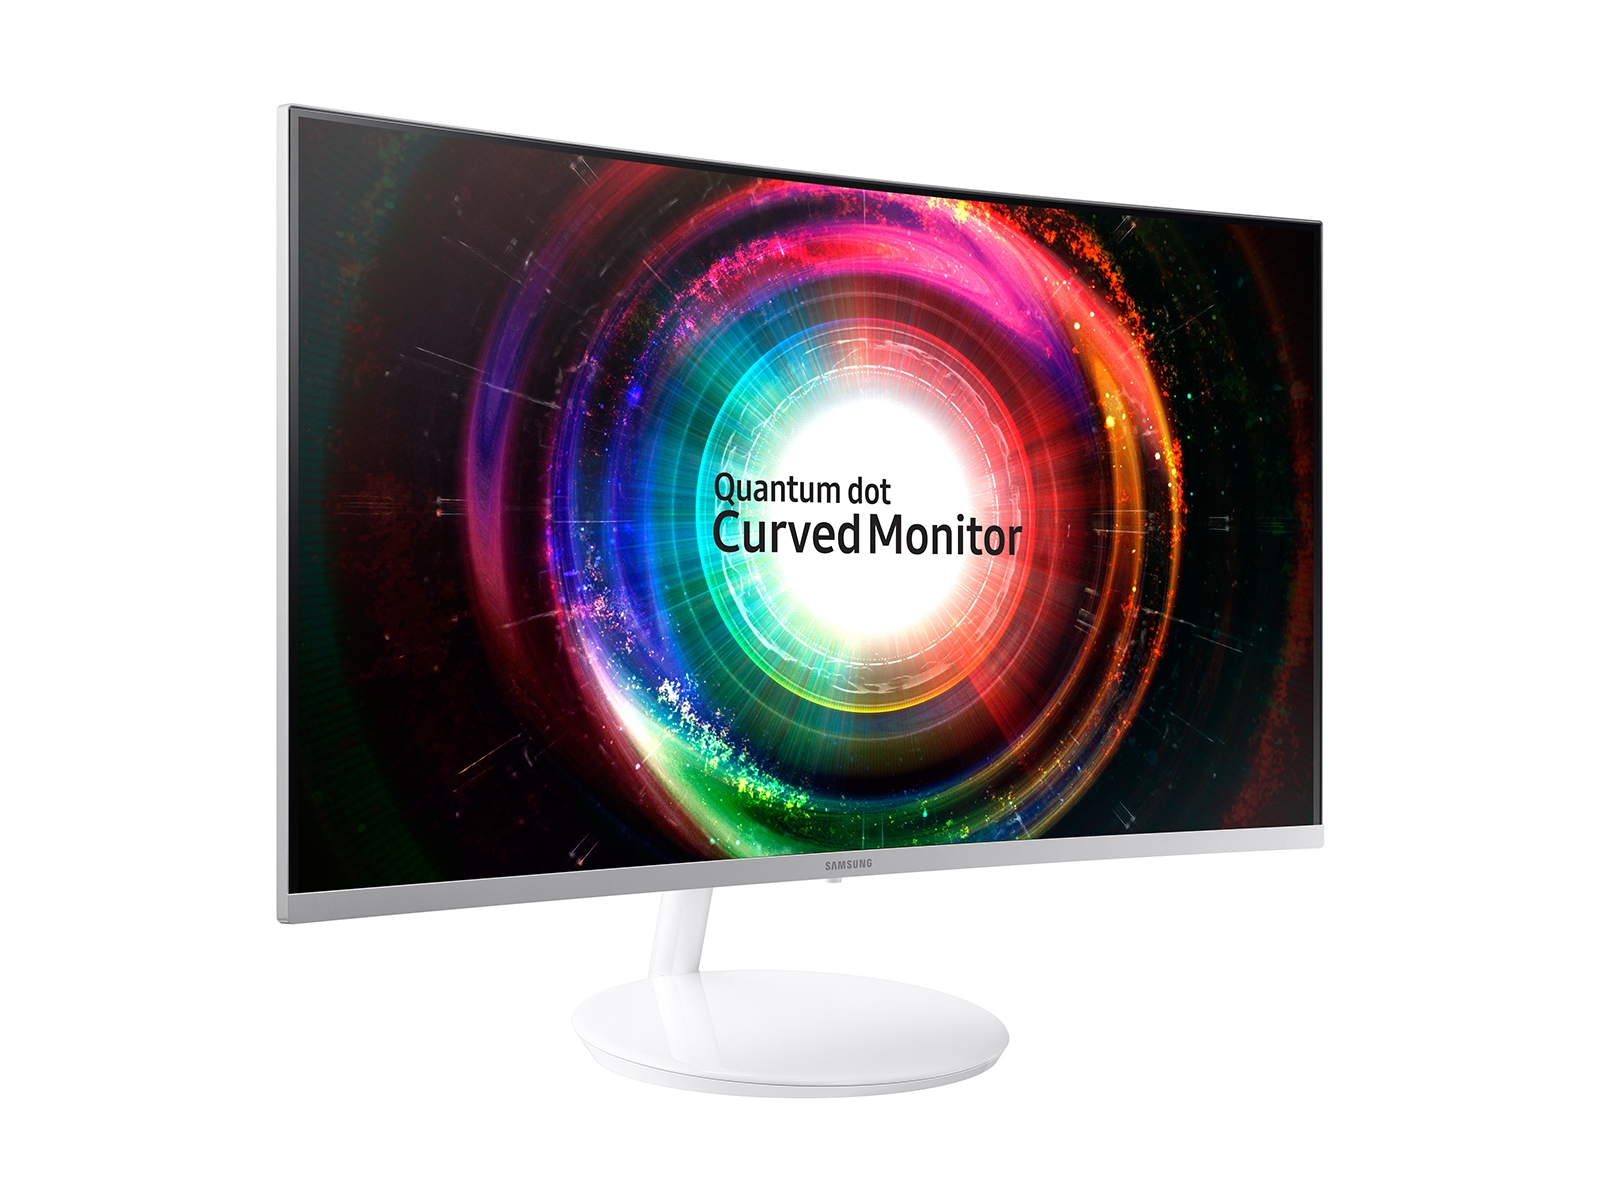 27 Ch711 Curved Monitor Monitors Lc27h711qenxza Samsung Us Led T8 Replacement Wiring Diagram Free Download